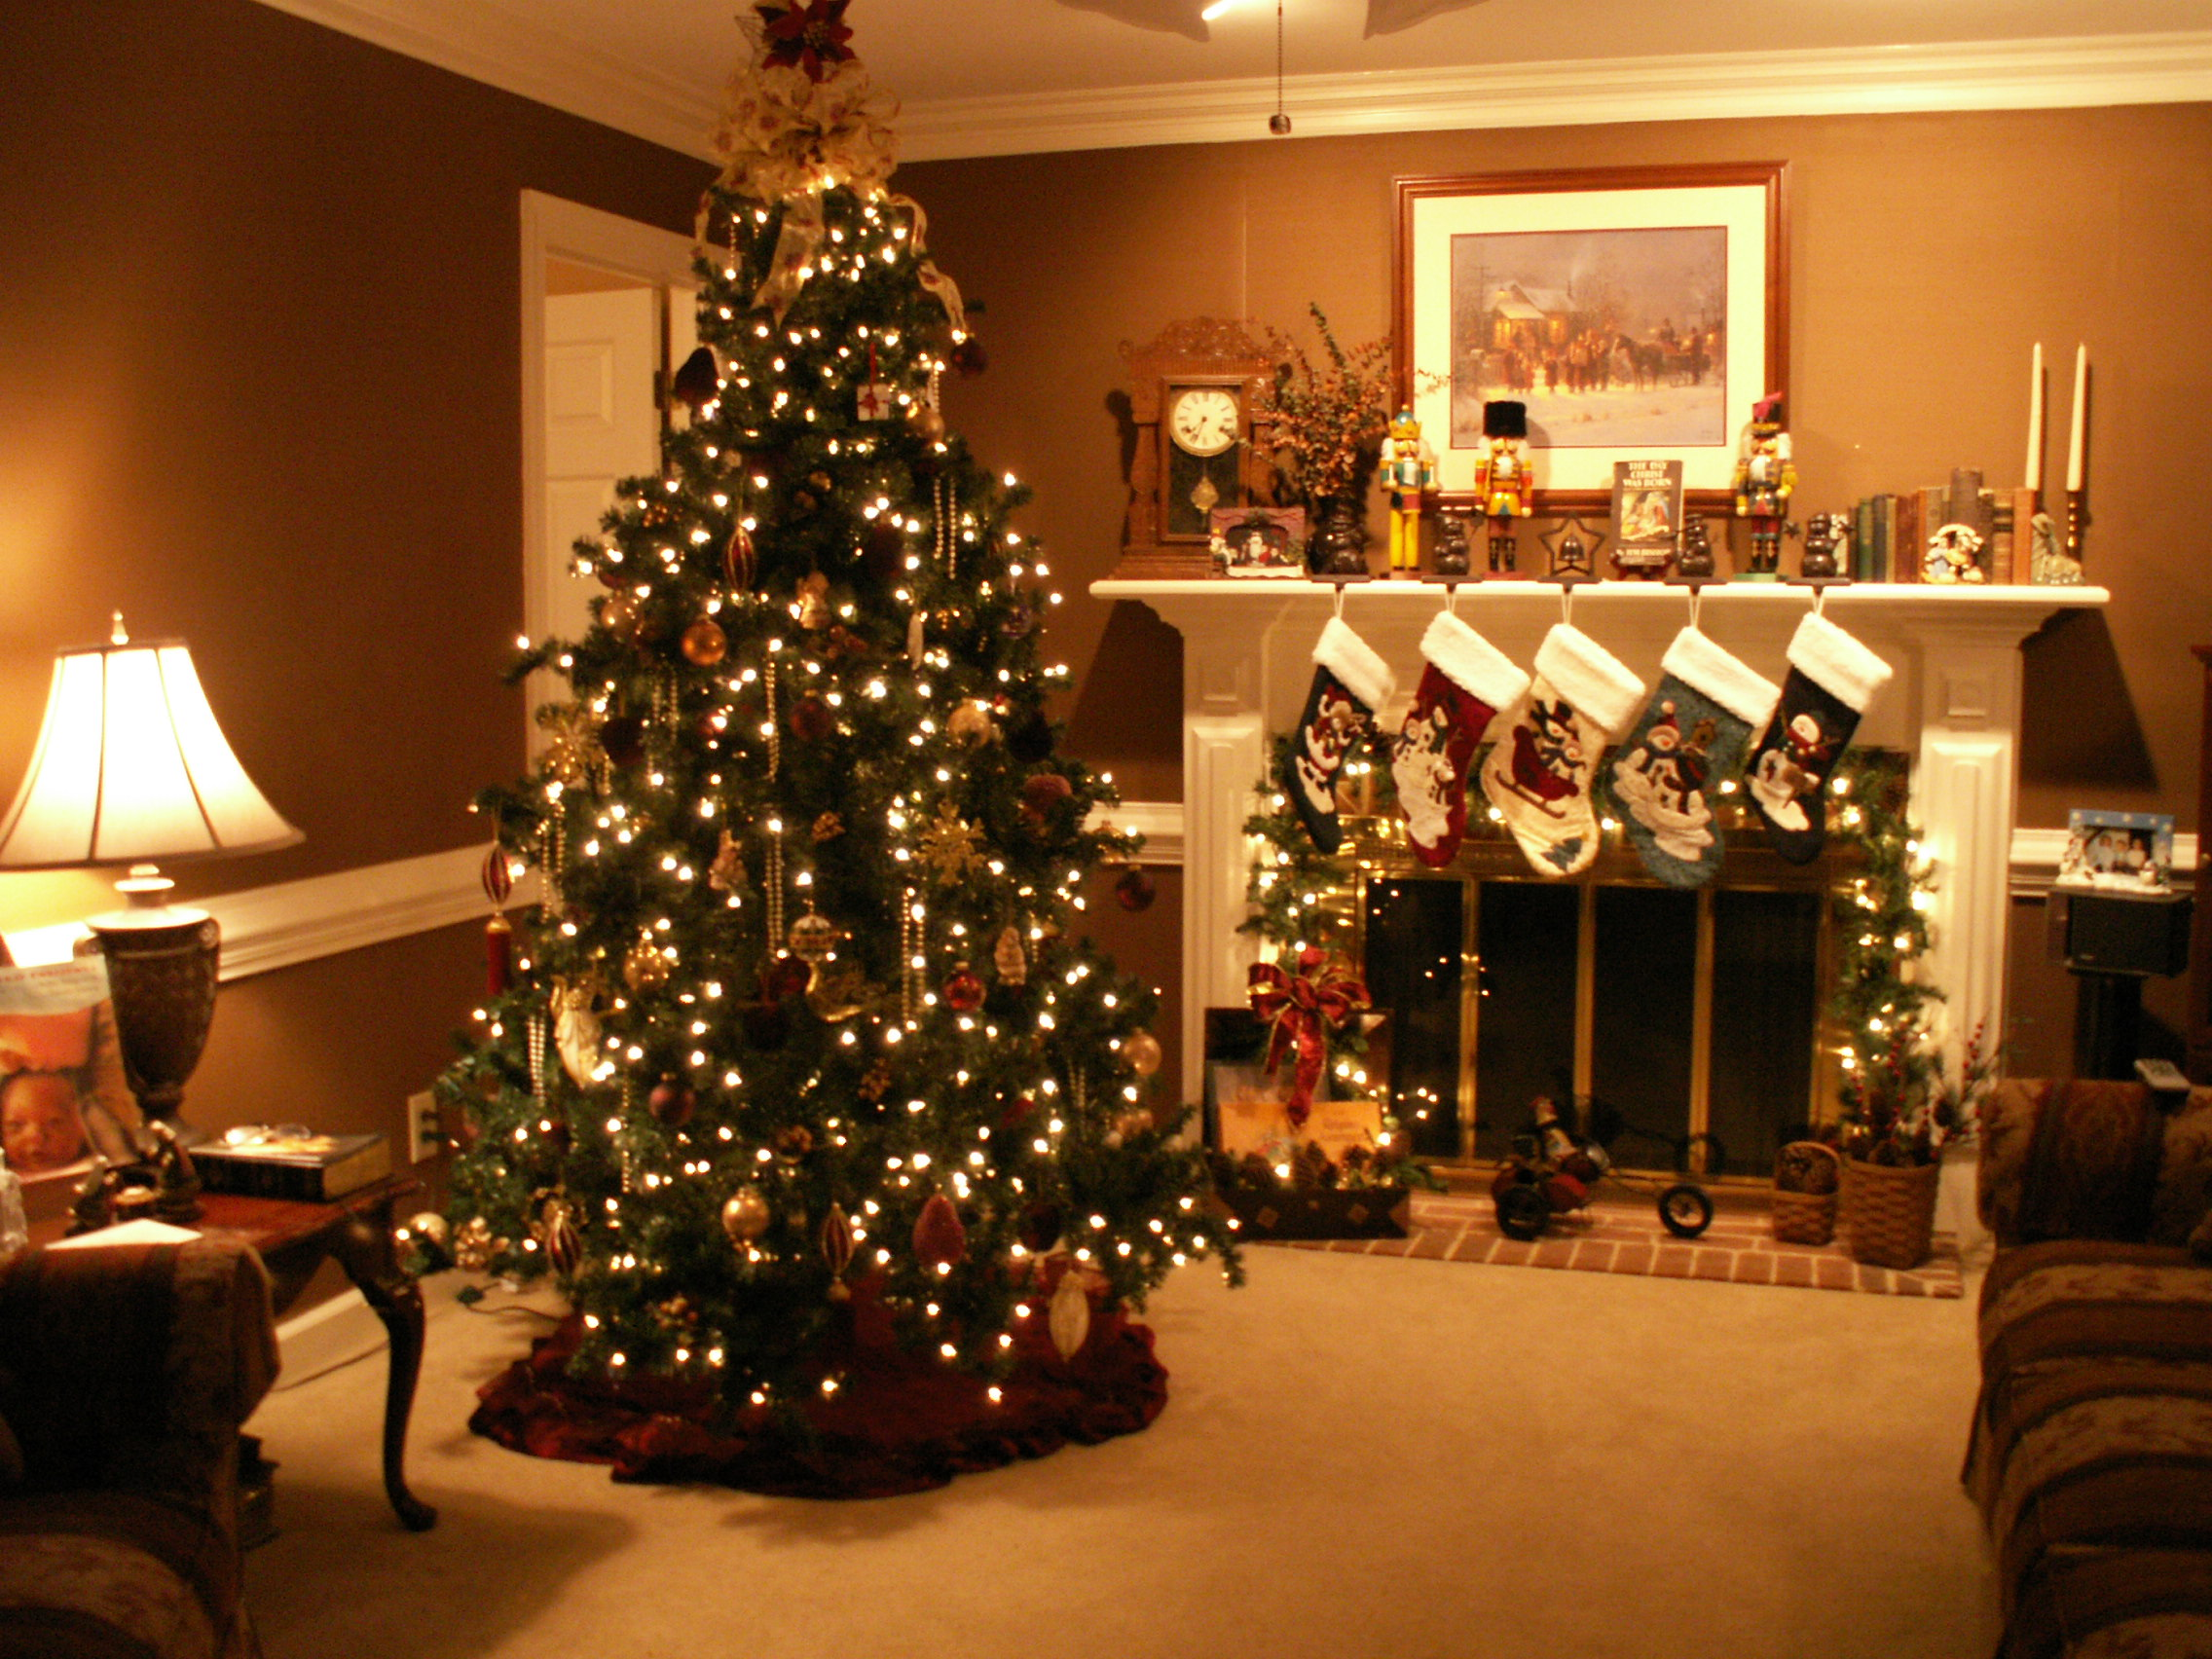 Christmas fireplace fire holiday festive decorations 4 wallpaper 2272x1704